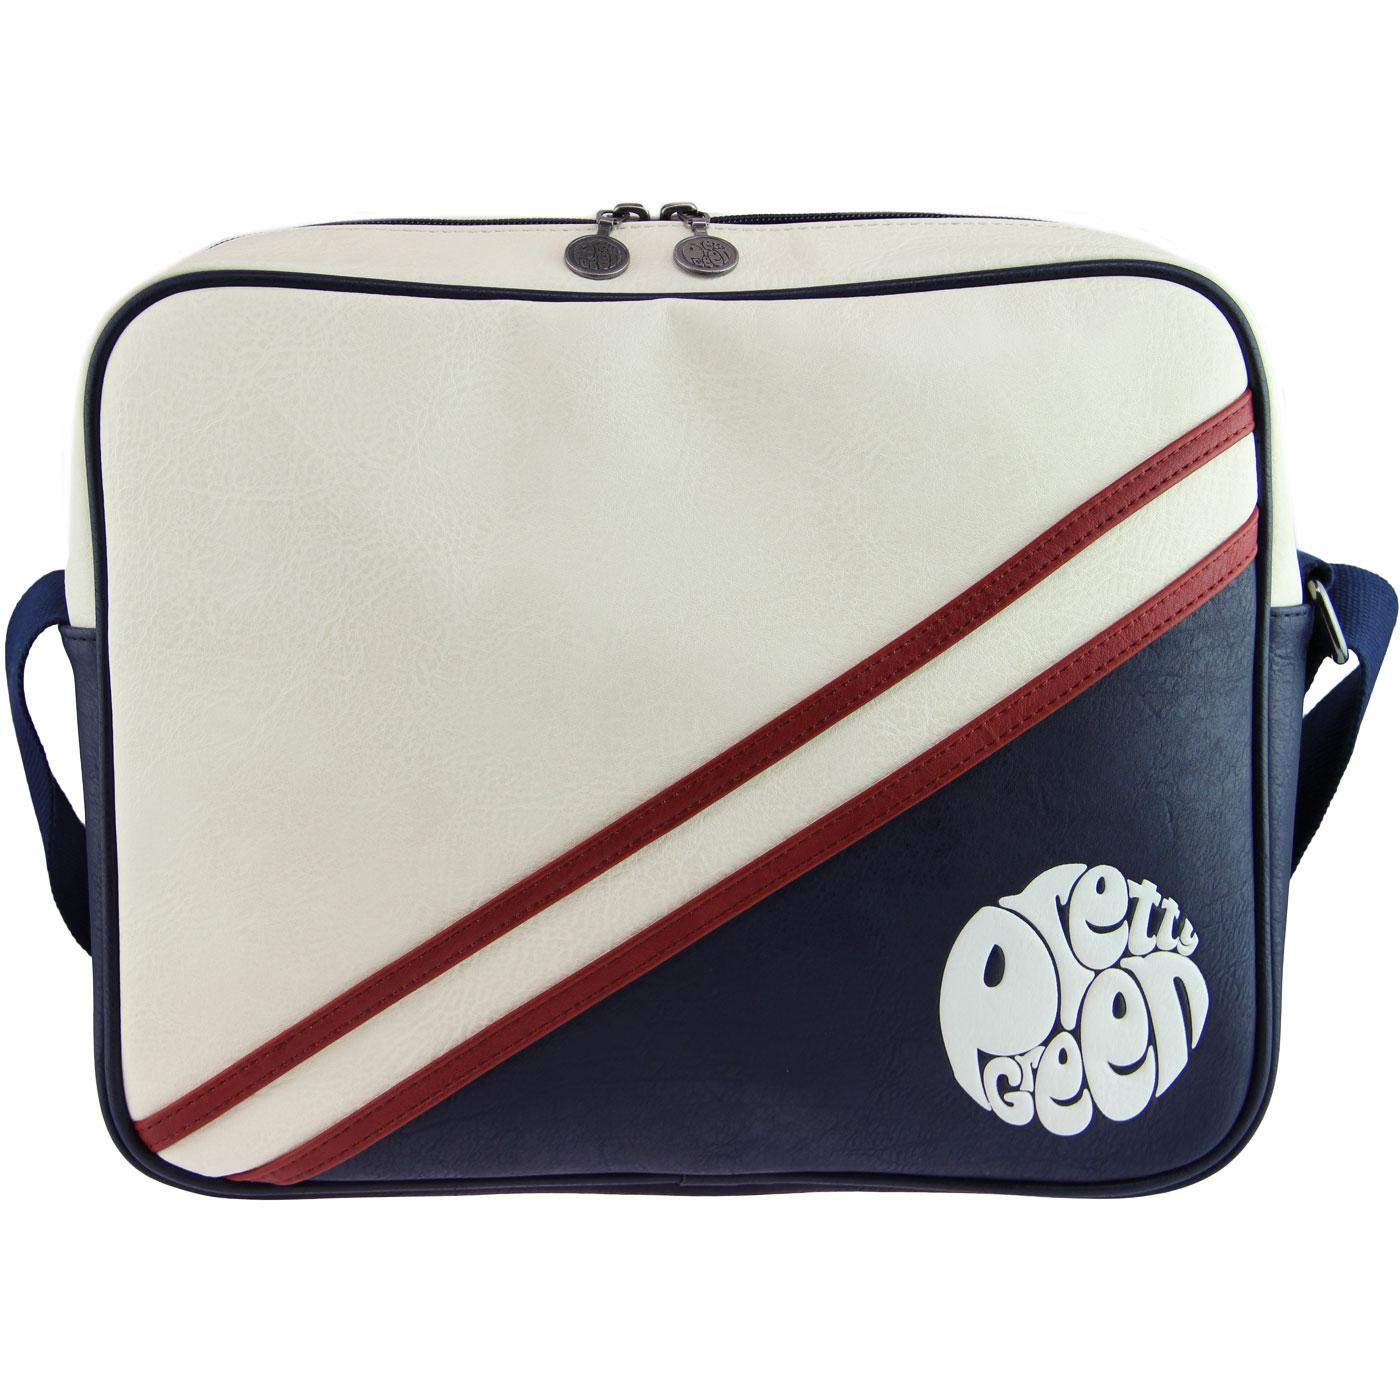 PRETTY GREEN Retro Mod Shoulder Bag (Off White)